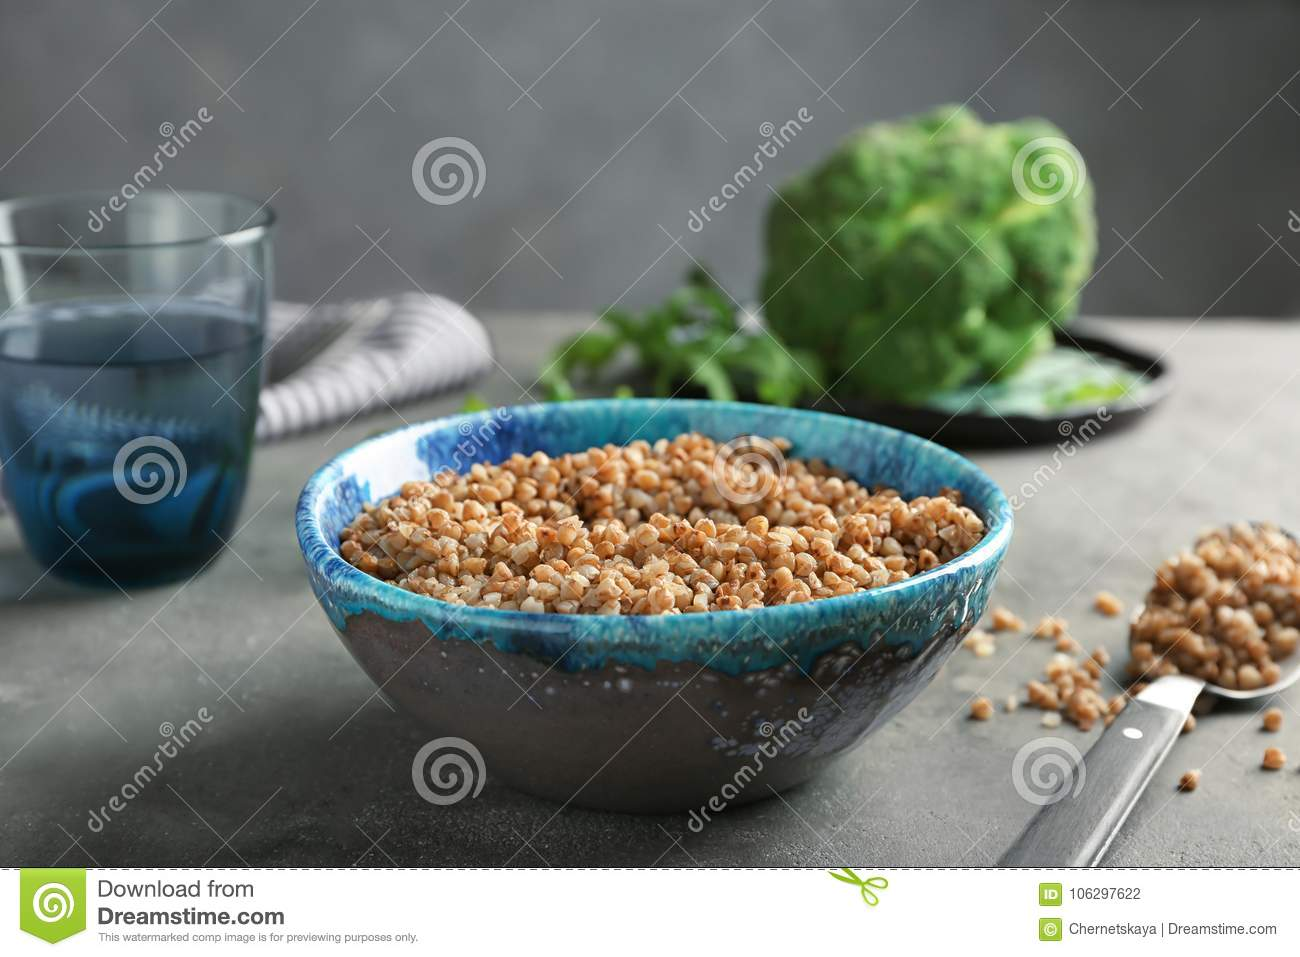 In what proportion to boil buckwheat porridge how much water and how much buckwheat